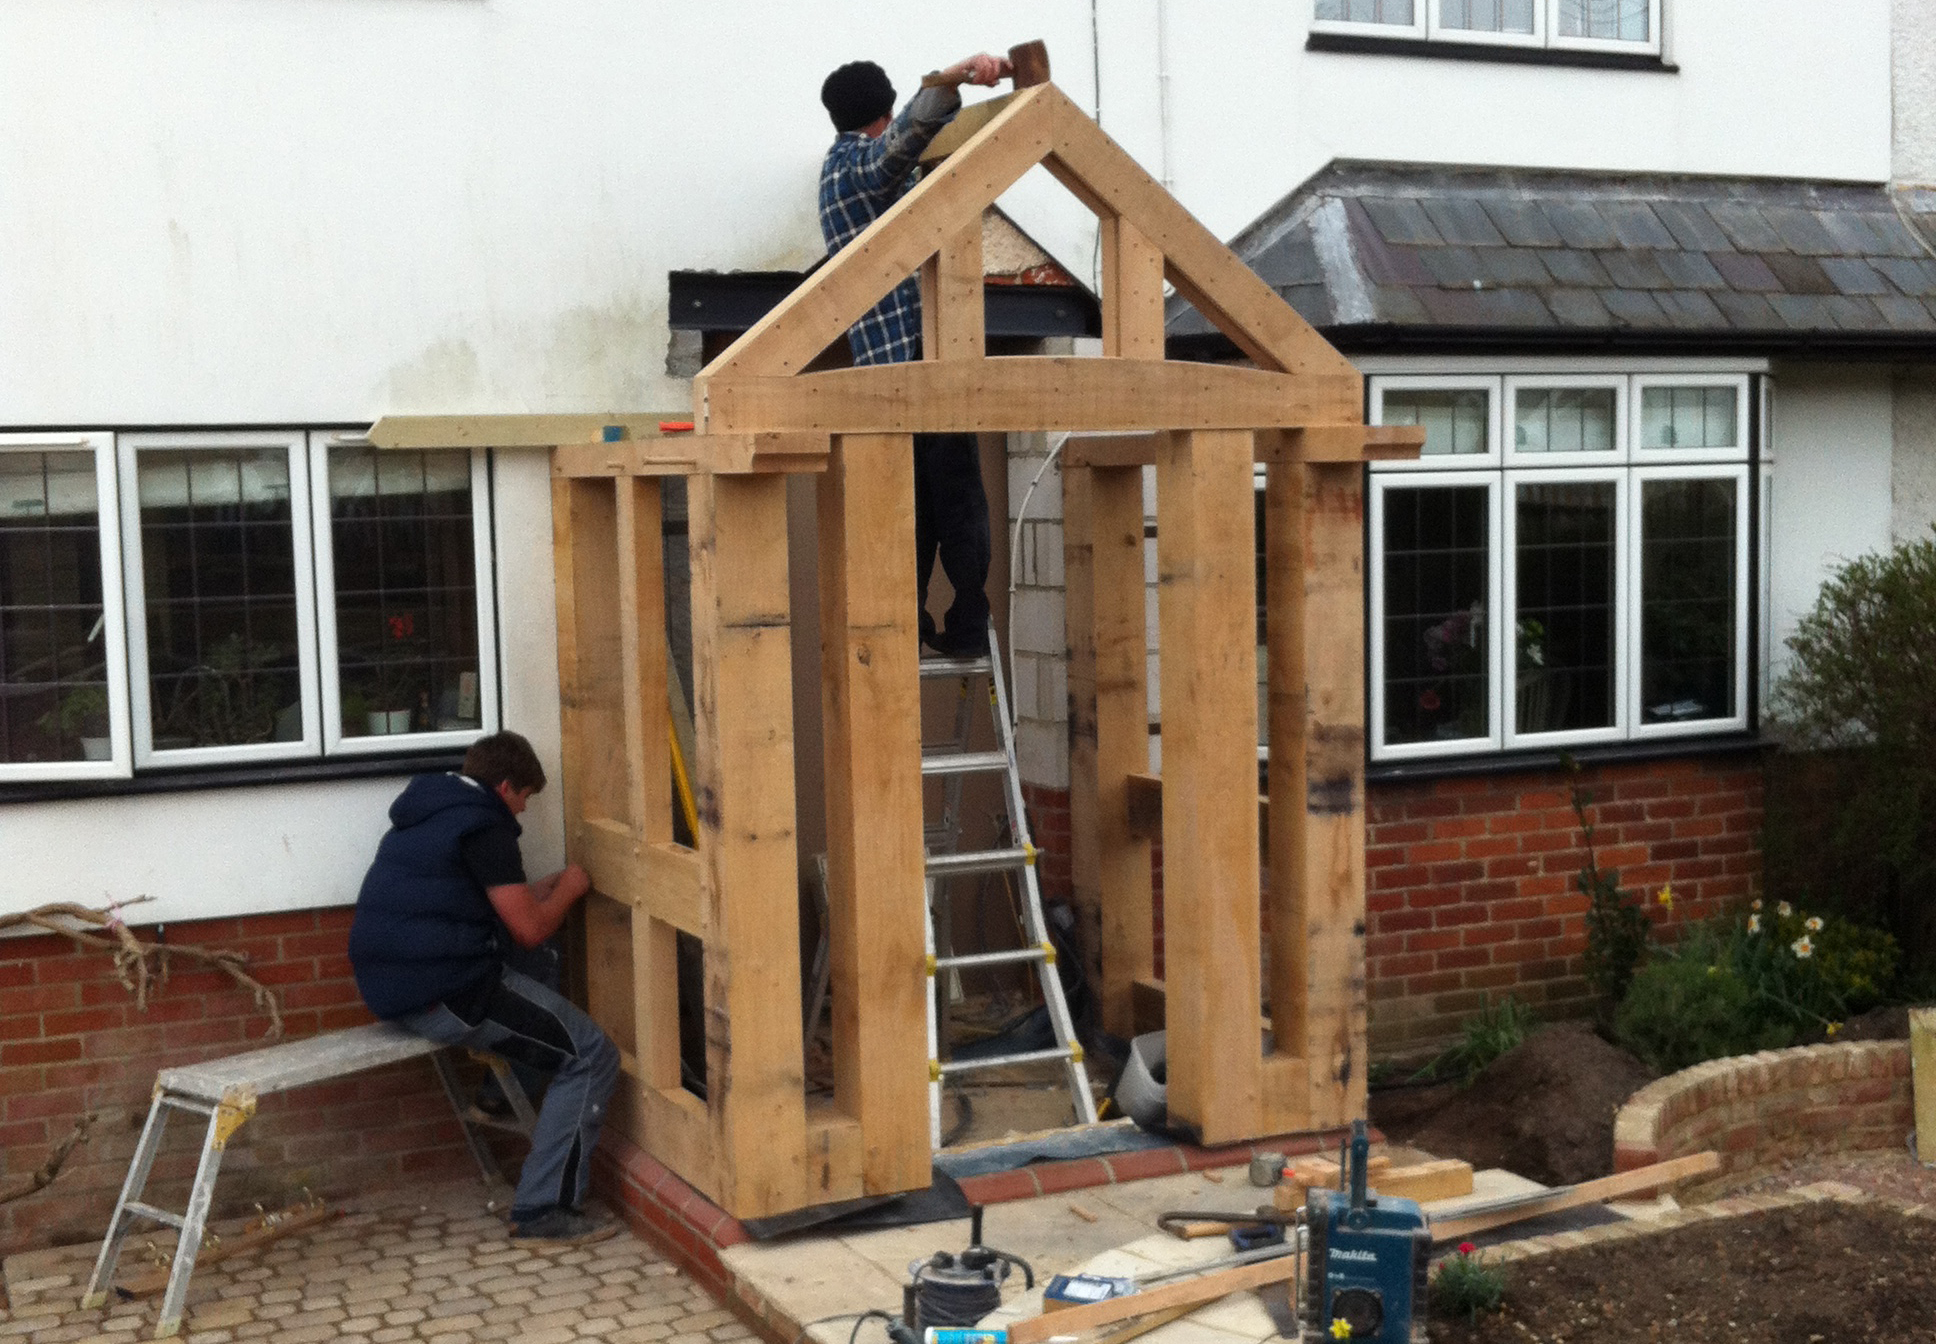 Construction of the new oak porch